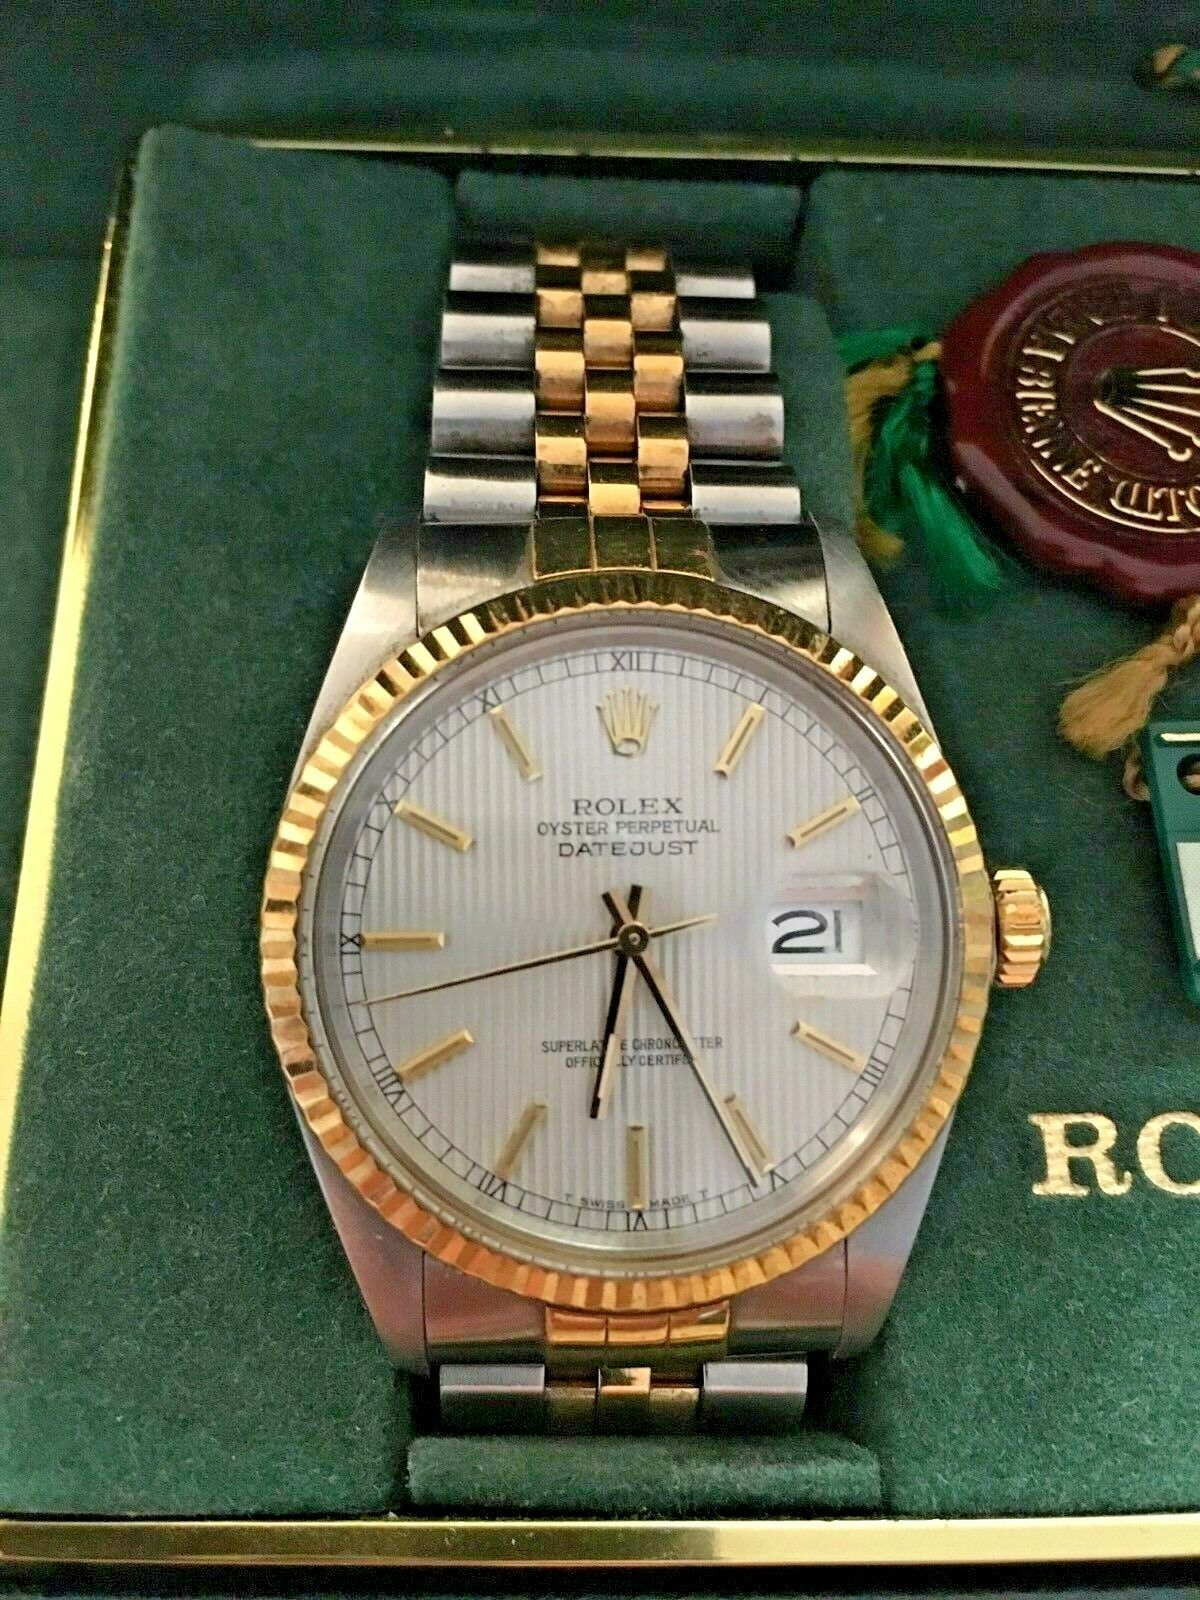 Forsale Rolex Datejust 16013 Vintage 1987 Two Tone Fluted Bezel 36mm 100 Authentic Price 2900 Used Rolex Rolex Fo Rolex Datejust Used Rolex Old Watches